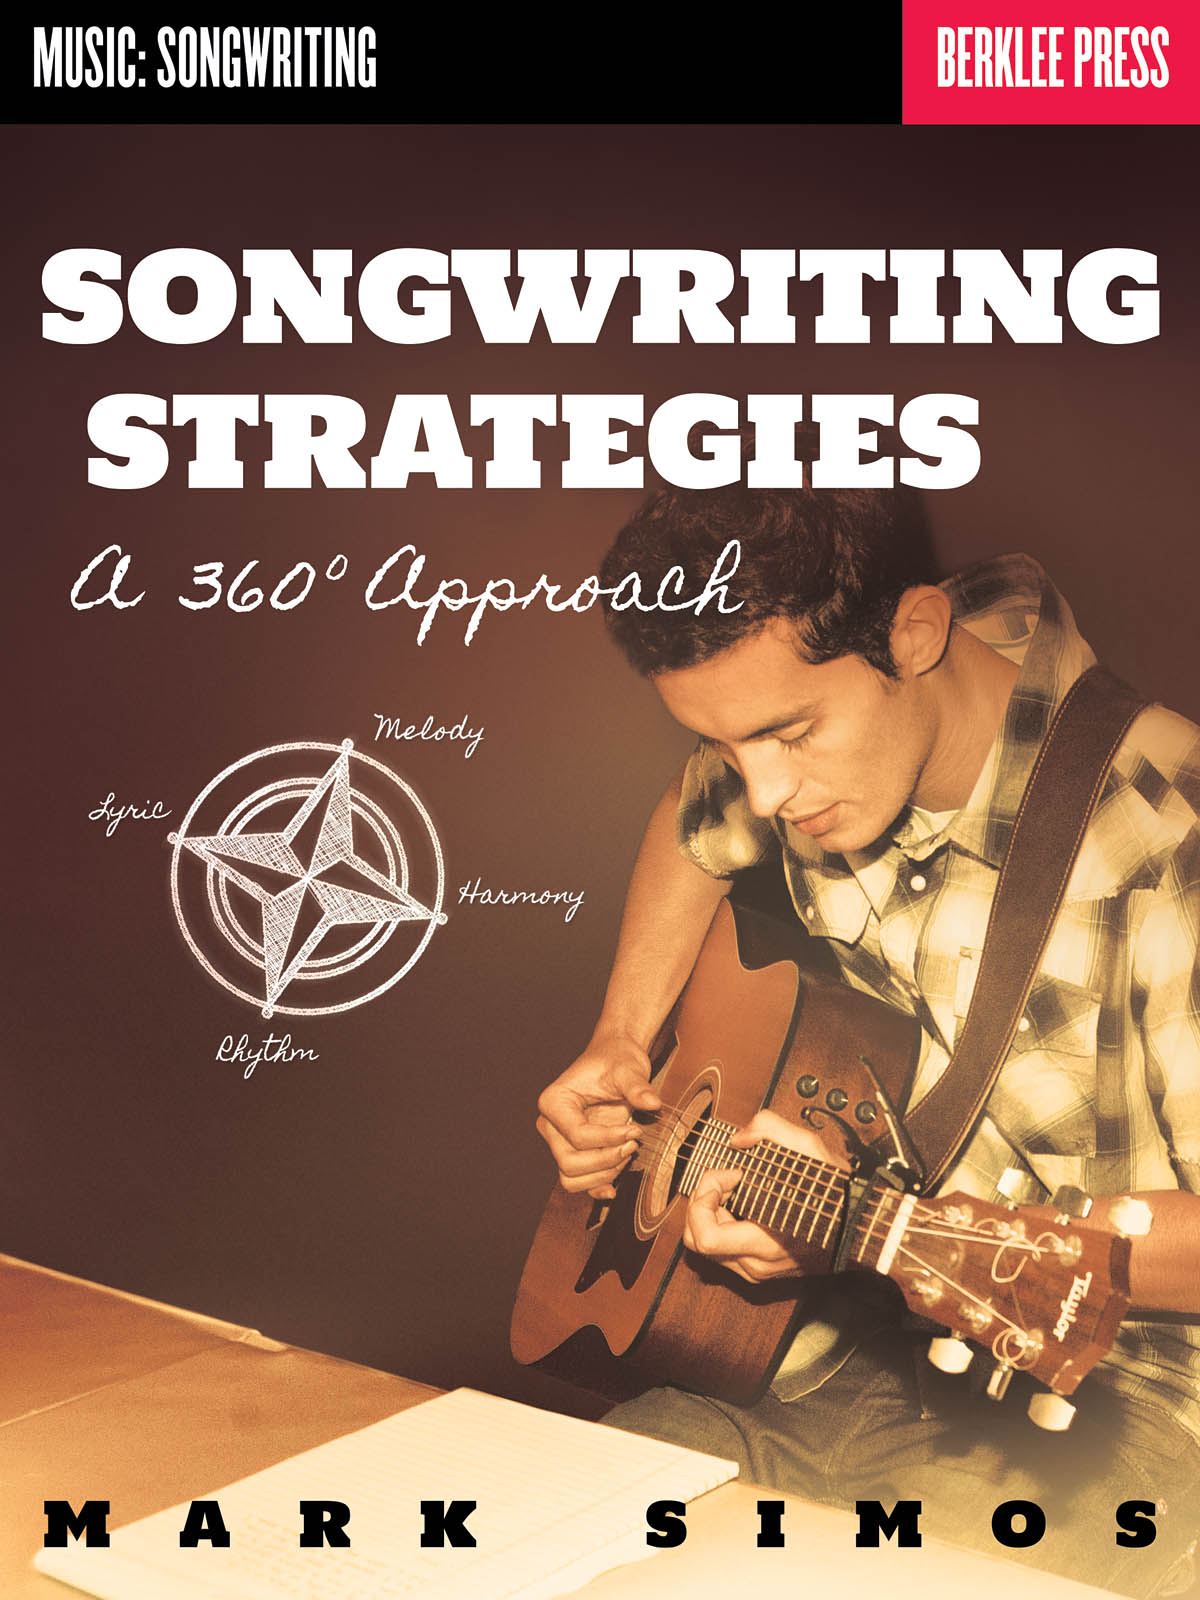 Songwriting Strategies: Reference